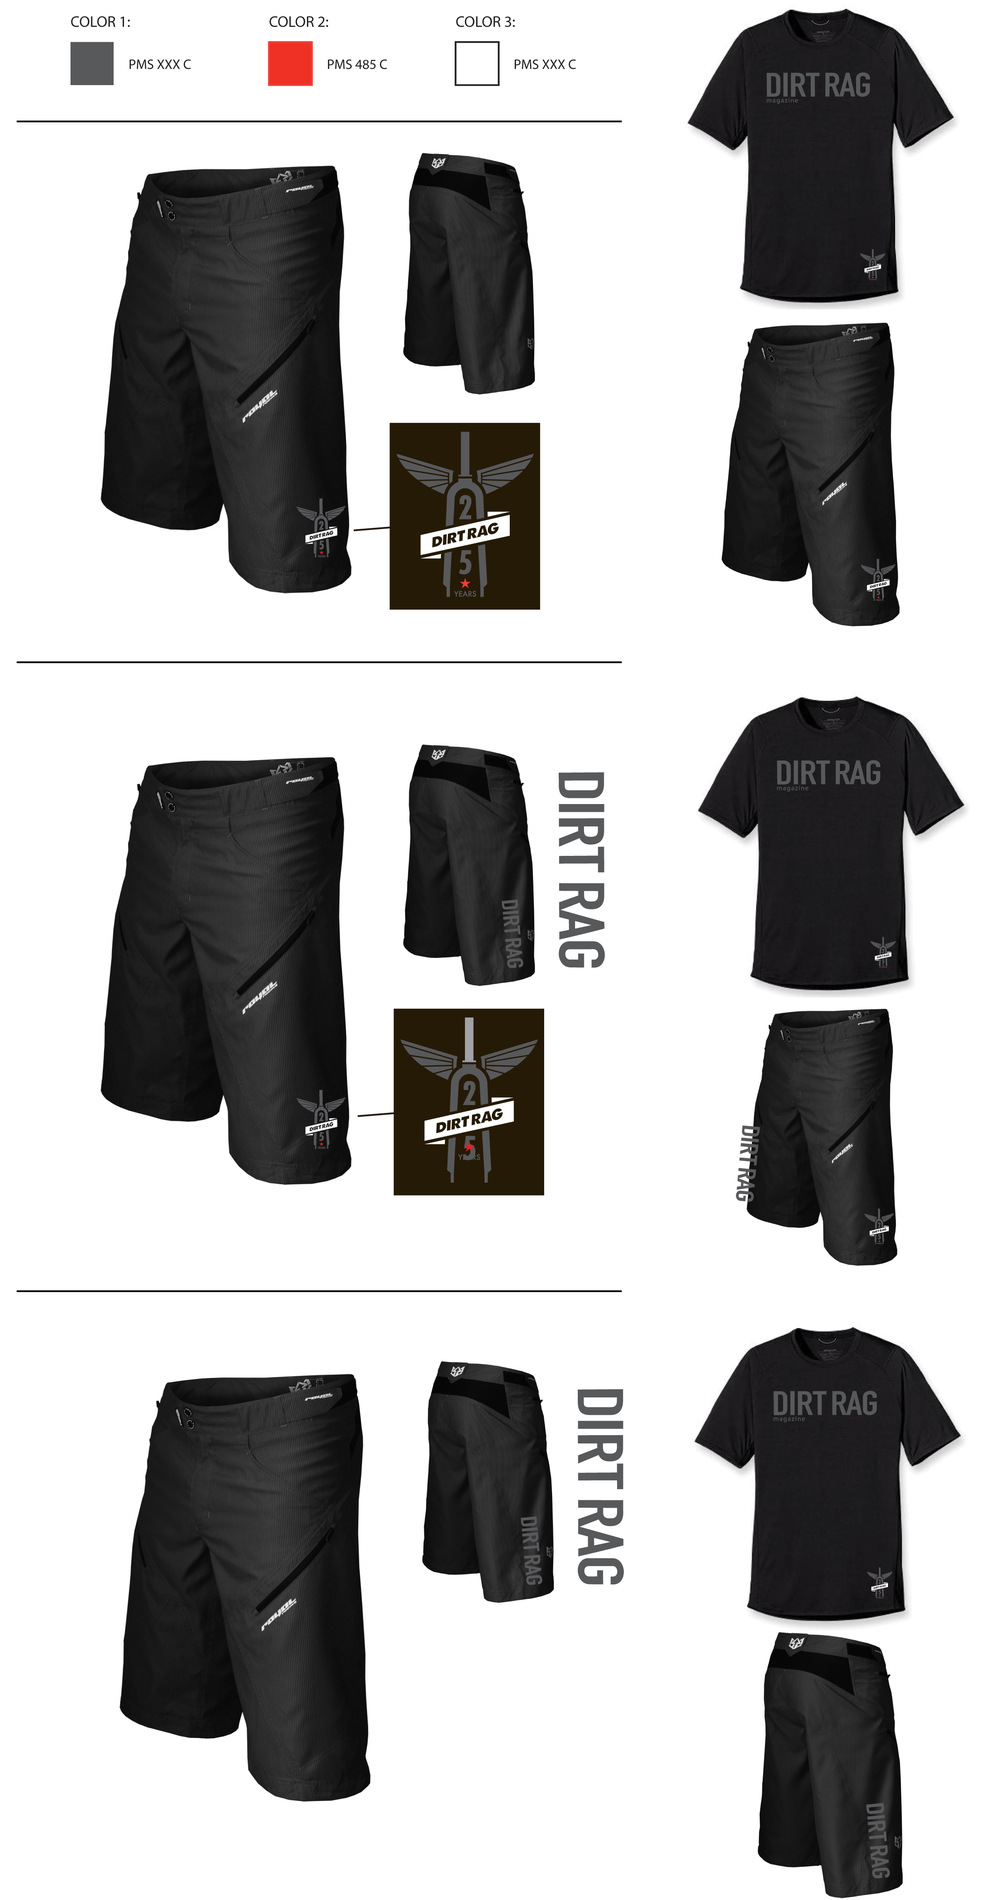 2014 Trail Kit Shorts.jpg